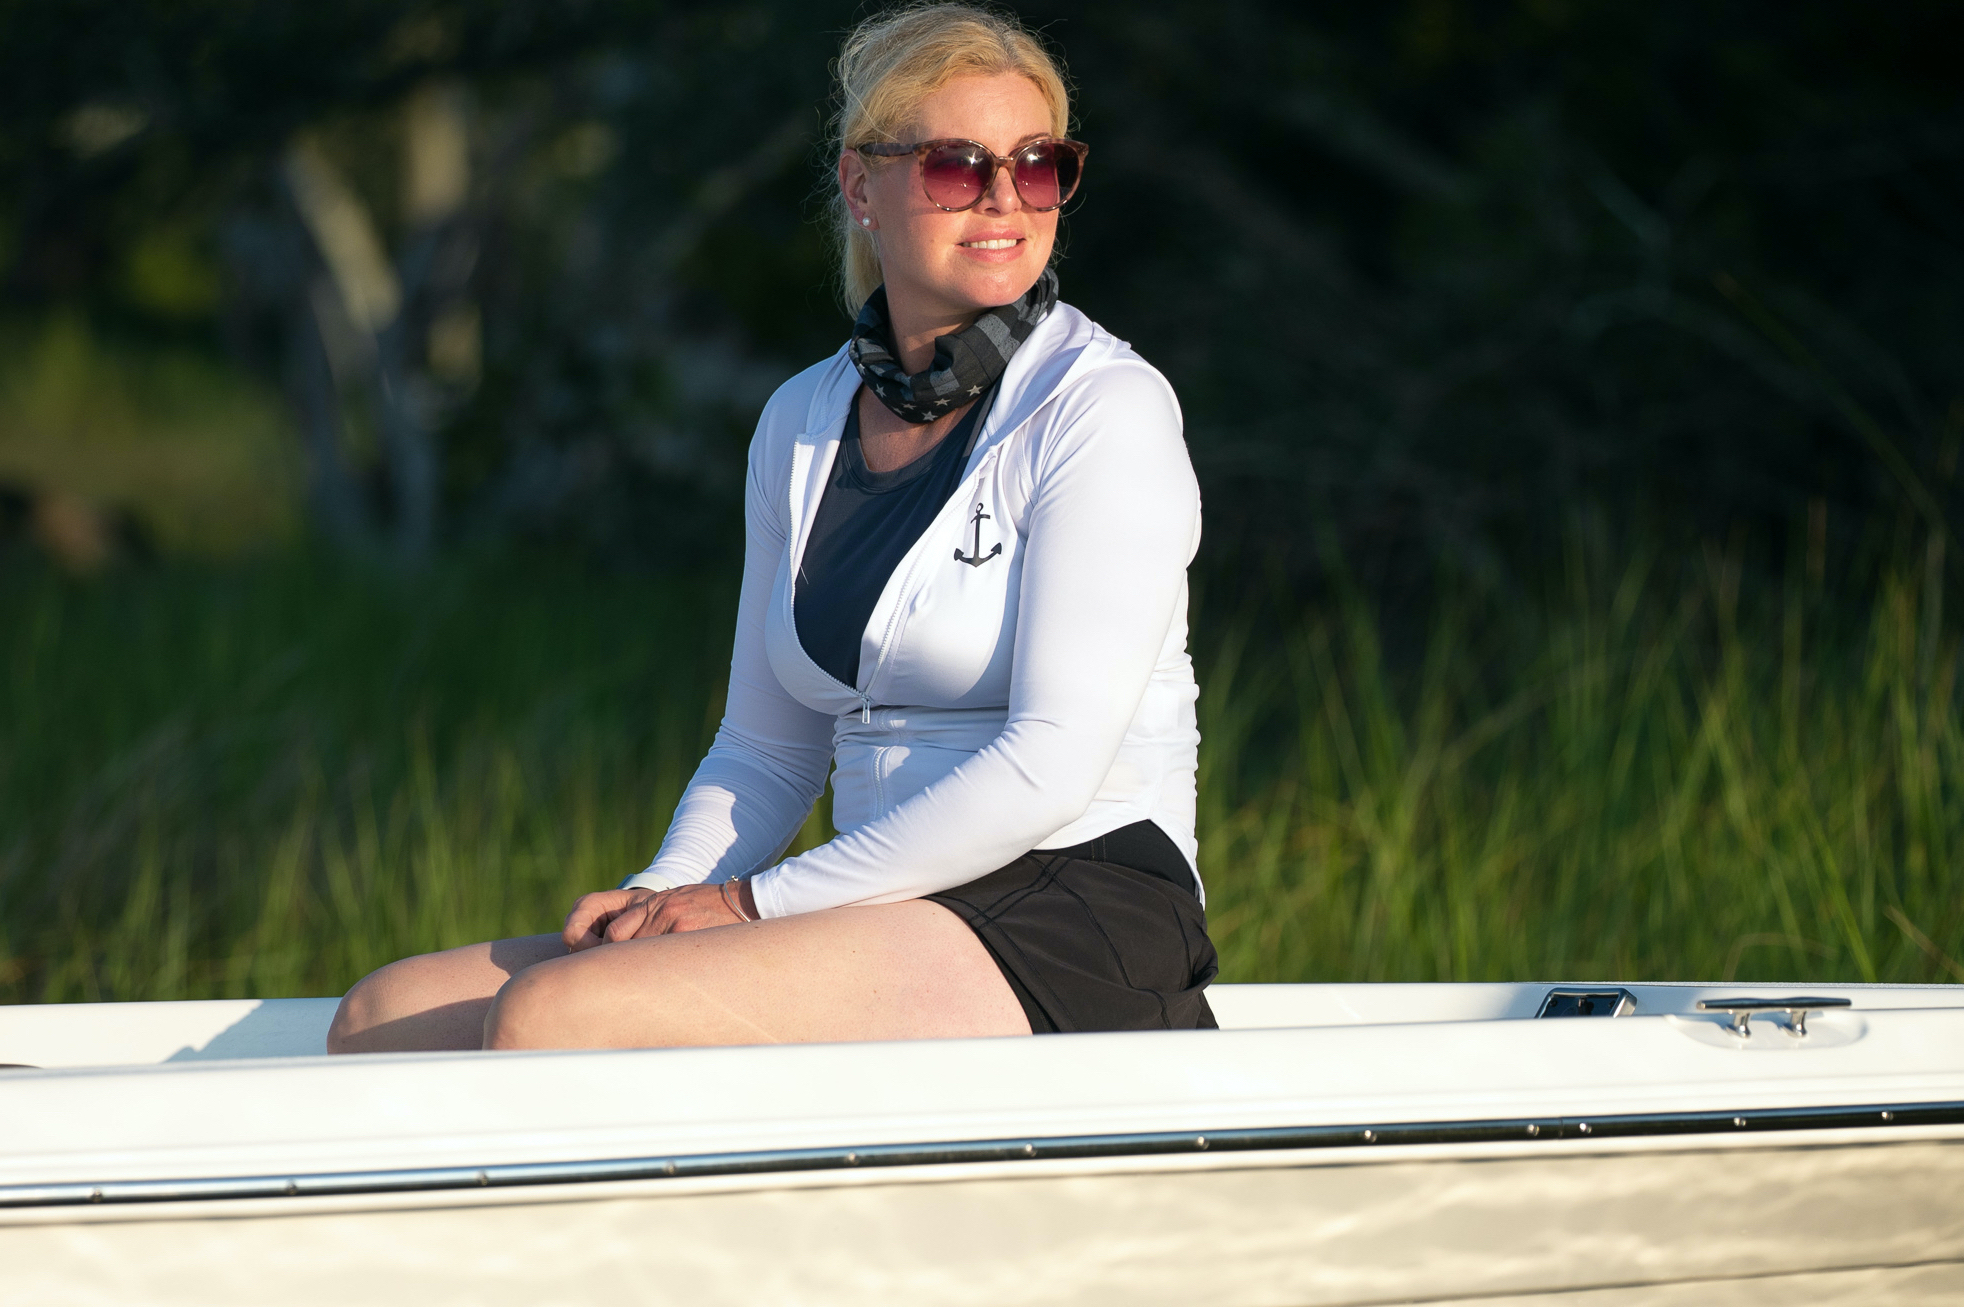 A woman sits on the casting deck of a NauticStar 215SB boat